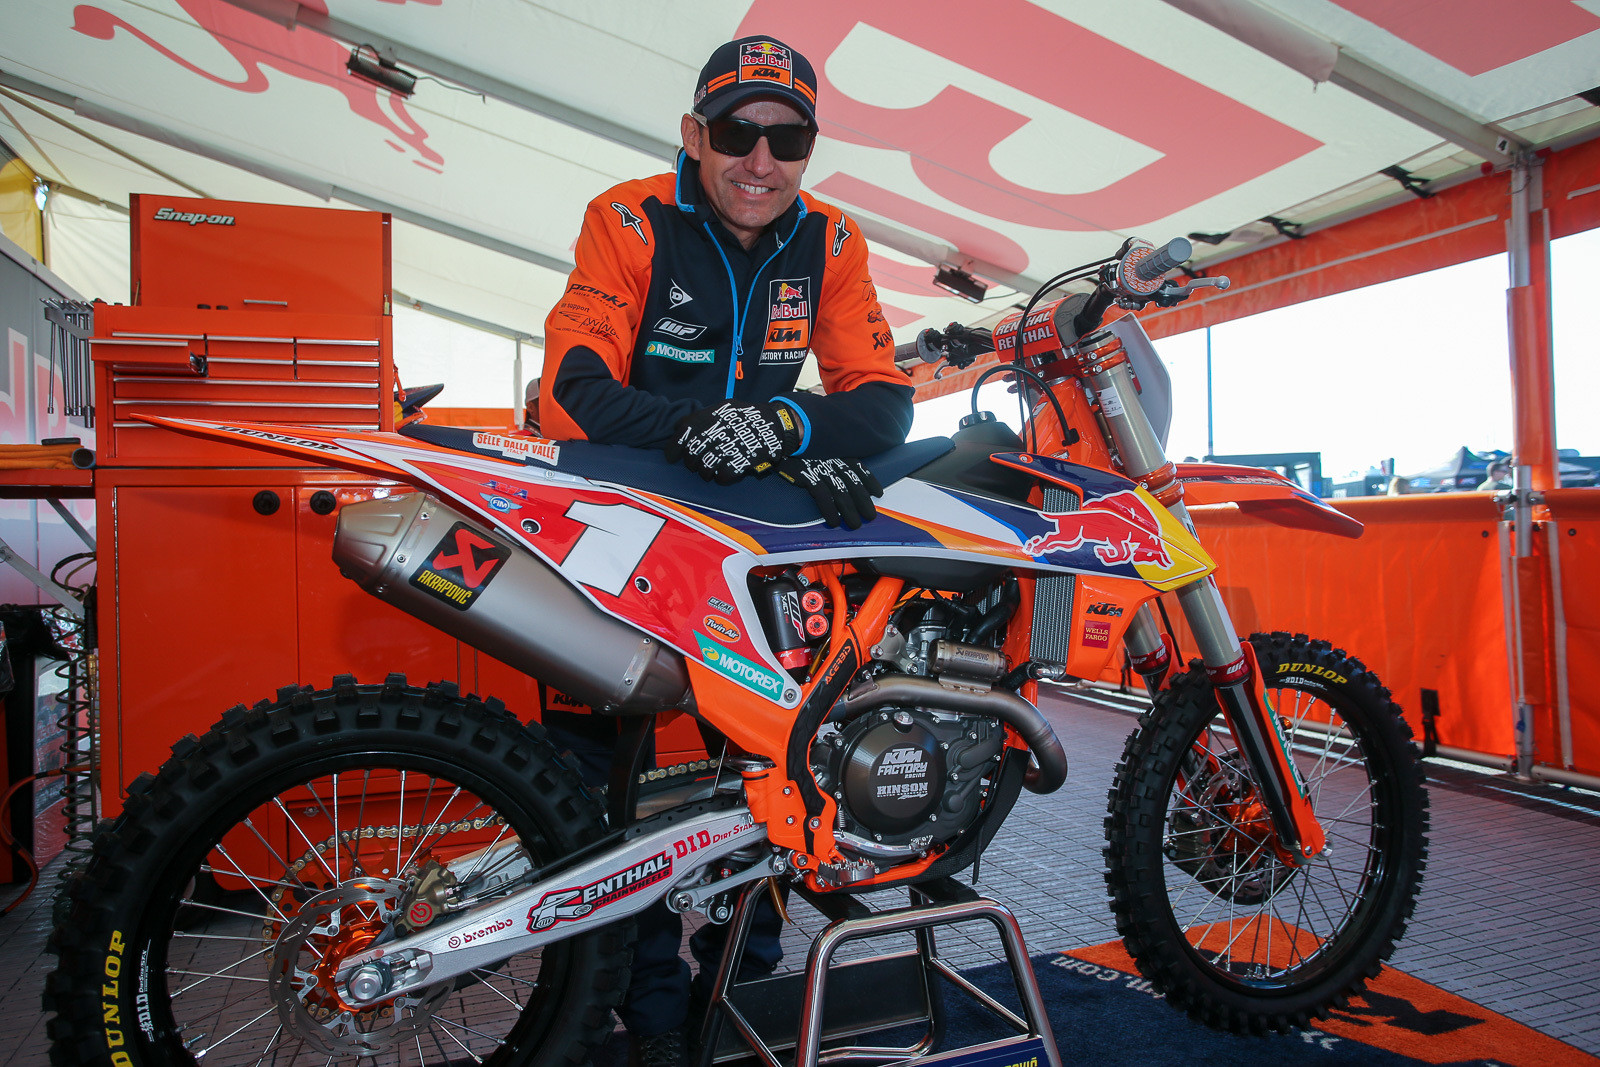 Oh, you think this bike is Cooper Webb's? Nope, it belongs to Carlos Rivera (and KTM). Carlos lets Coop ride it on weekends, though.